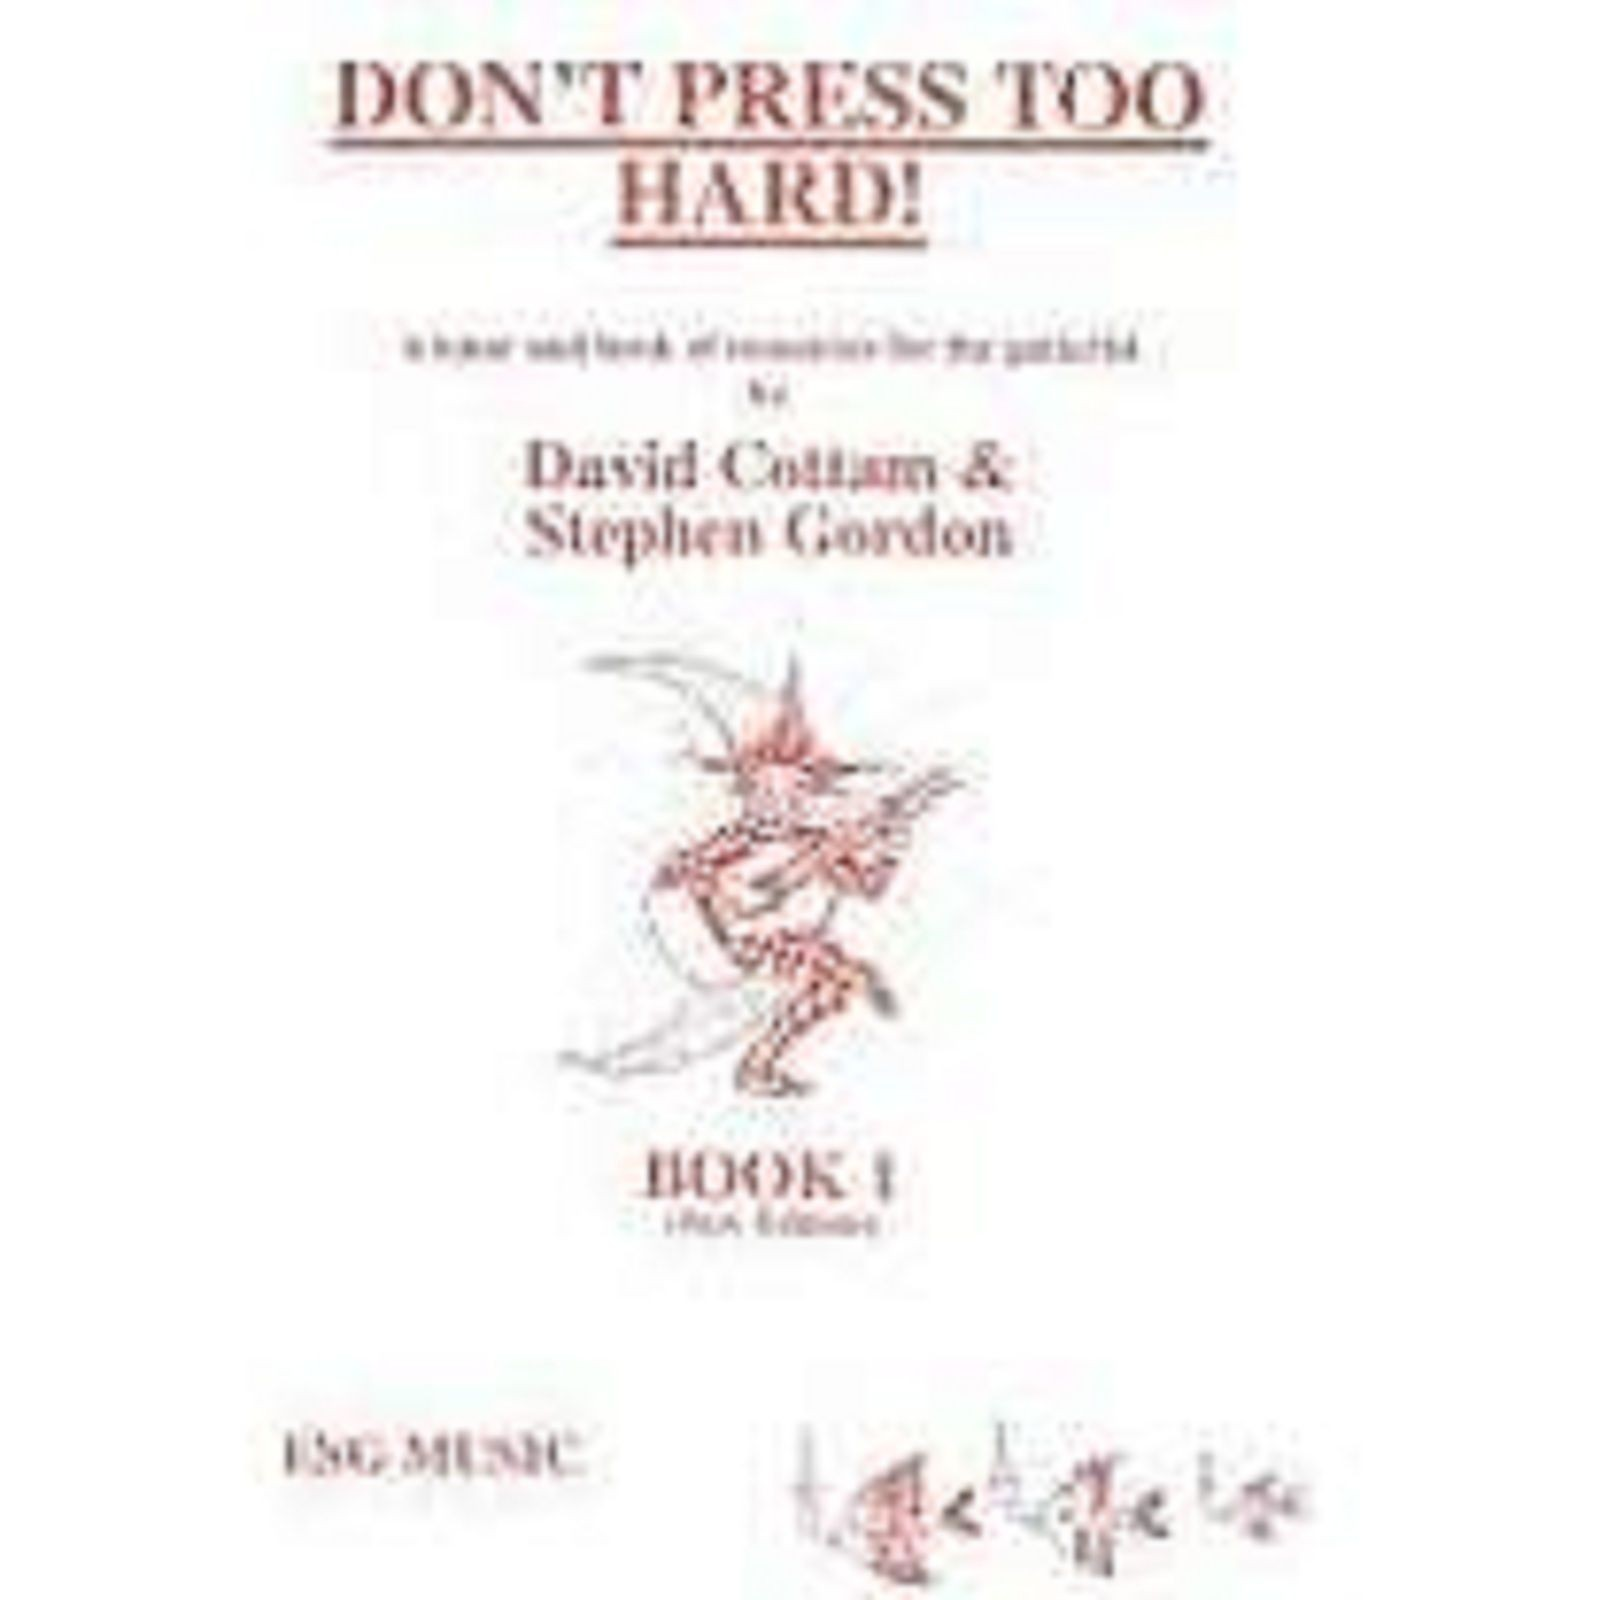 Don't Press Too Hard! Book 1 Beginner Guitar Tutor Classical Sheet Music S73